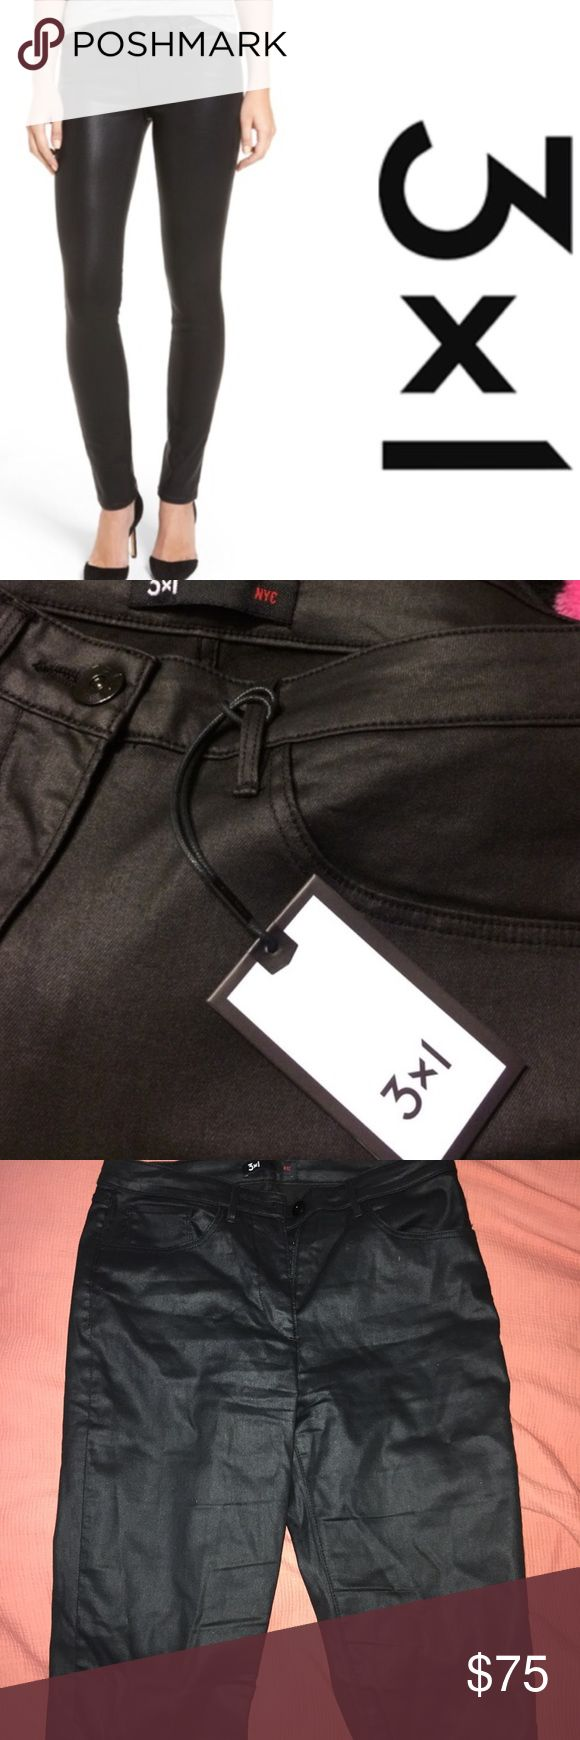 """3x1 wax coated black denim skinny jeans Worn once. Felt they were slightly large and I'm a true 28 (they weren't super skinny like I wanted them but fit fine if you wanted them more of a straight leg)! Size 28 measures 14.5"""" waist, 11"""" rise, 30"""" inseam. Buttons on opposite side as normal women's denim. 3x1 Jeans Skinny"""